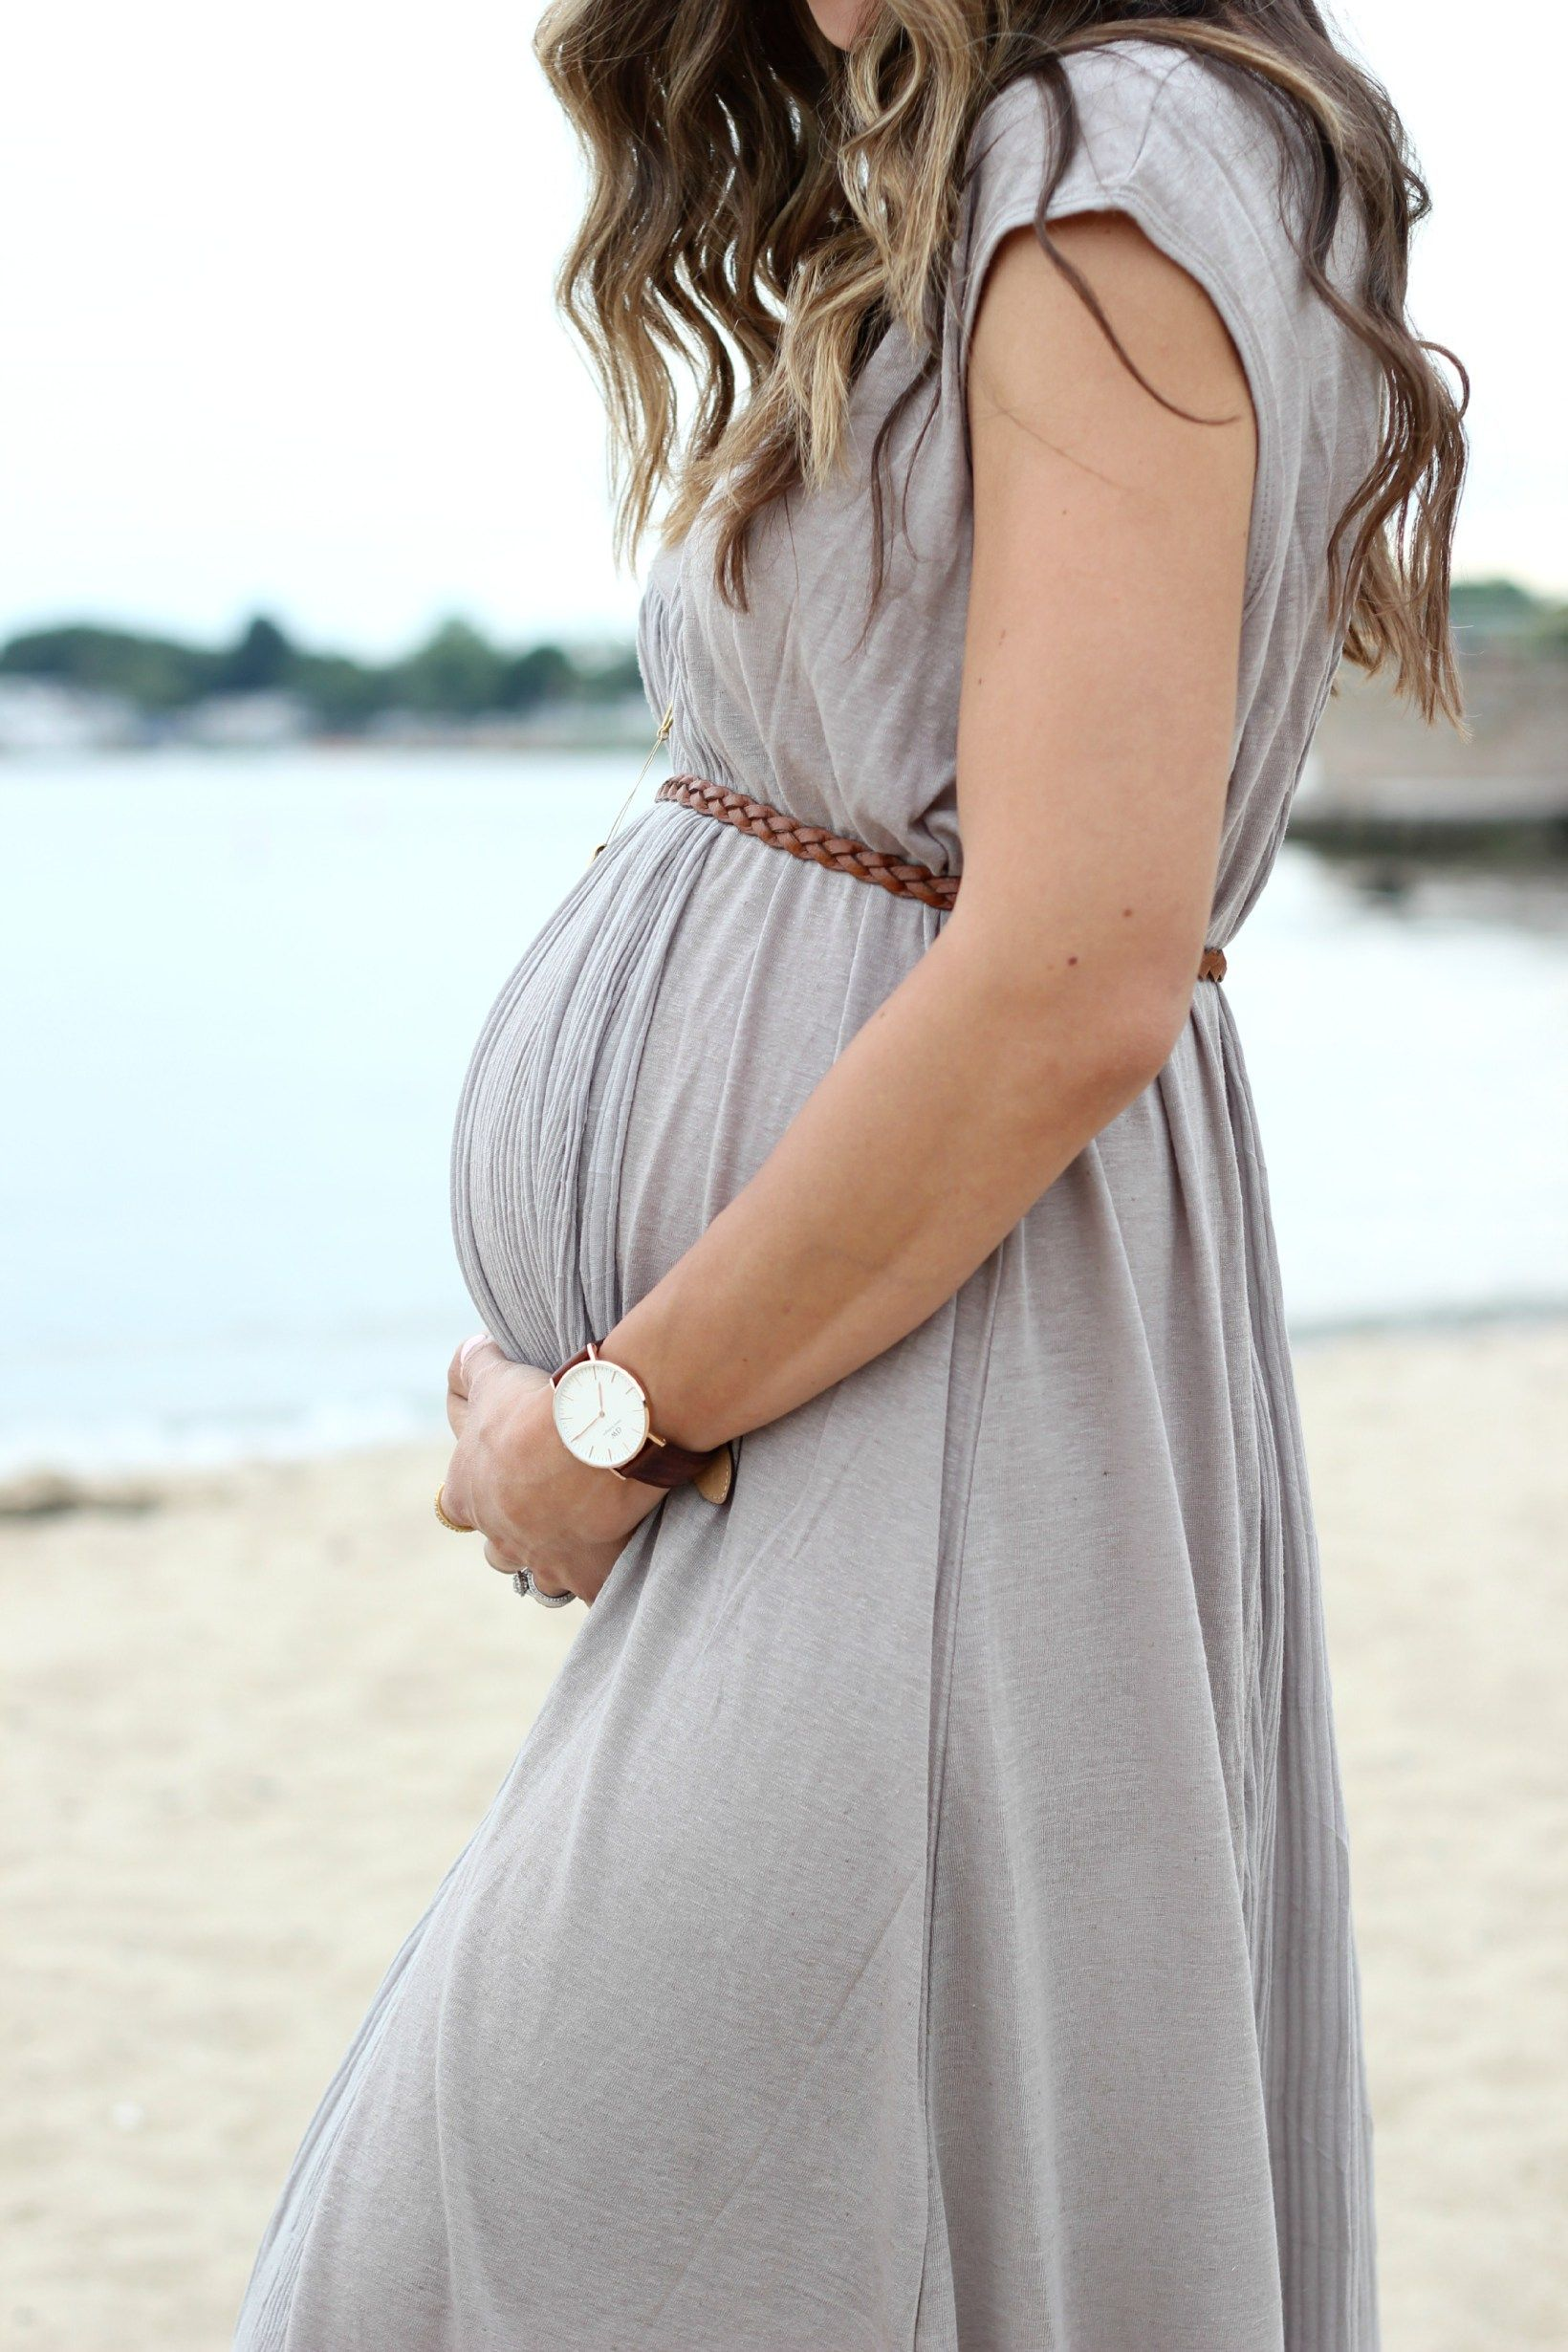 aece0af95f78d Are you a fan of the whole Bohemian Maternity Style look? Me too! Check out  some of my favorite pieces!